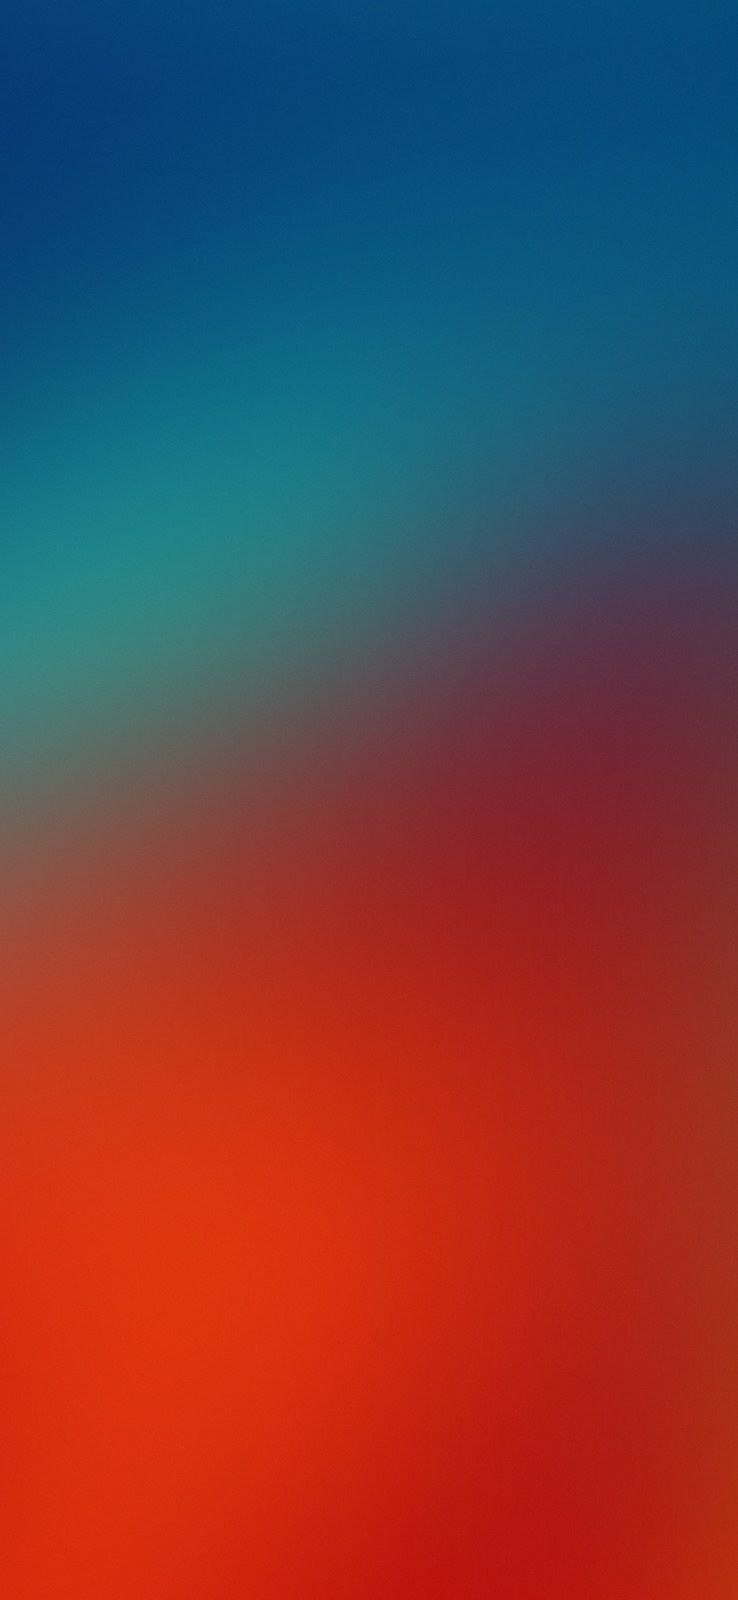 gradient phone wallpaper